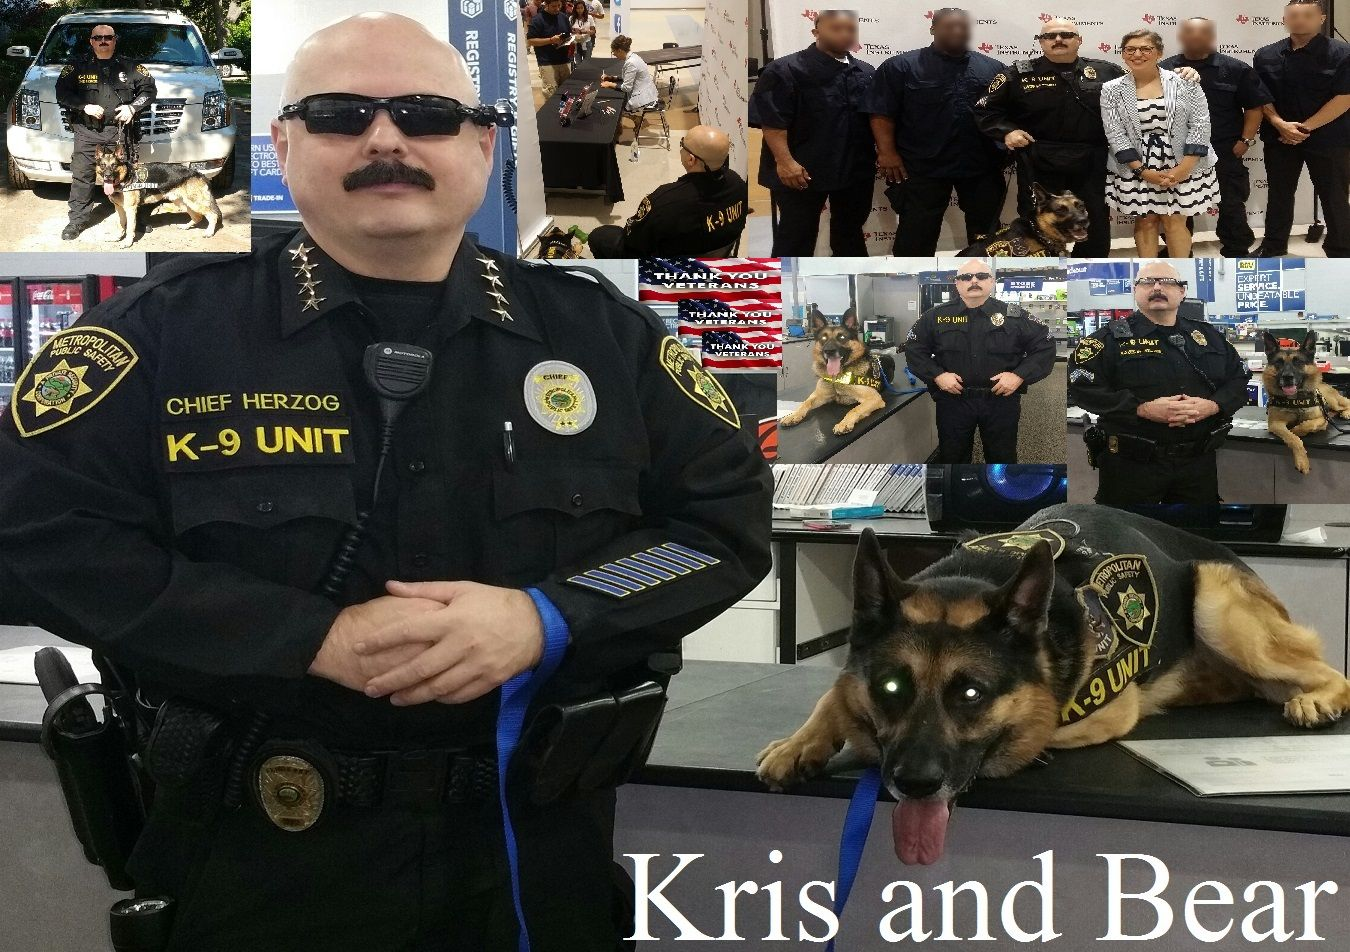 Famous celebrity bodyguard Kris Herzog k-9 BEAR and The Bodyguard Group of Beverly Hills security 90210